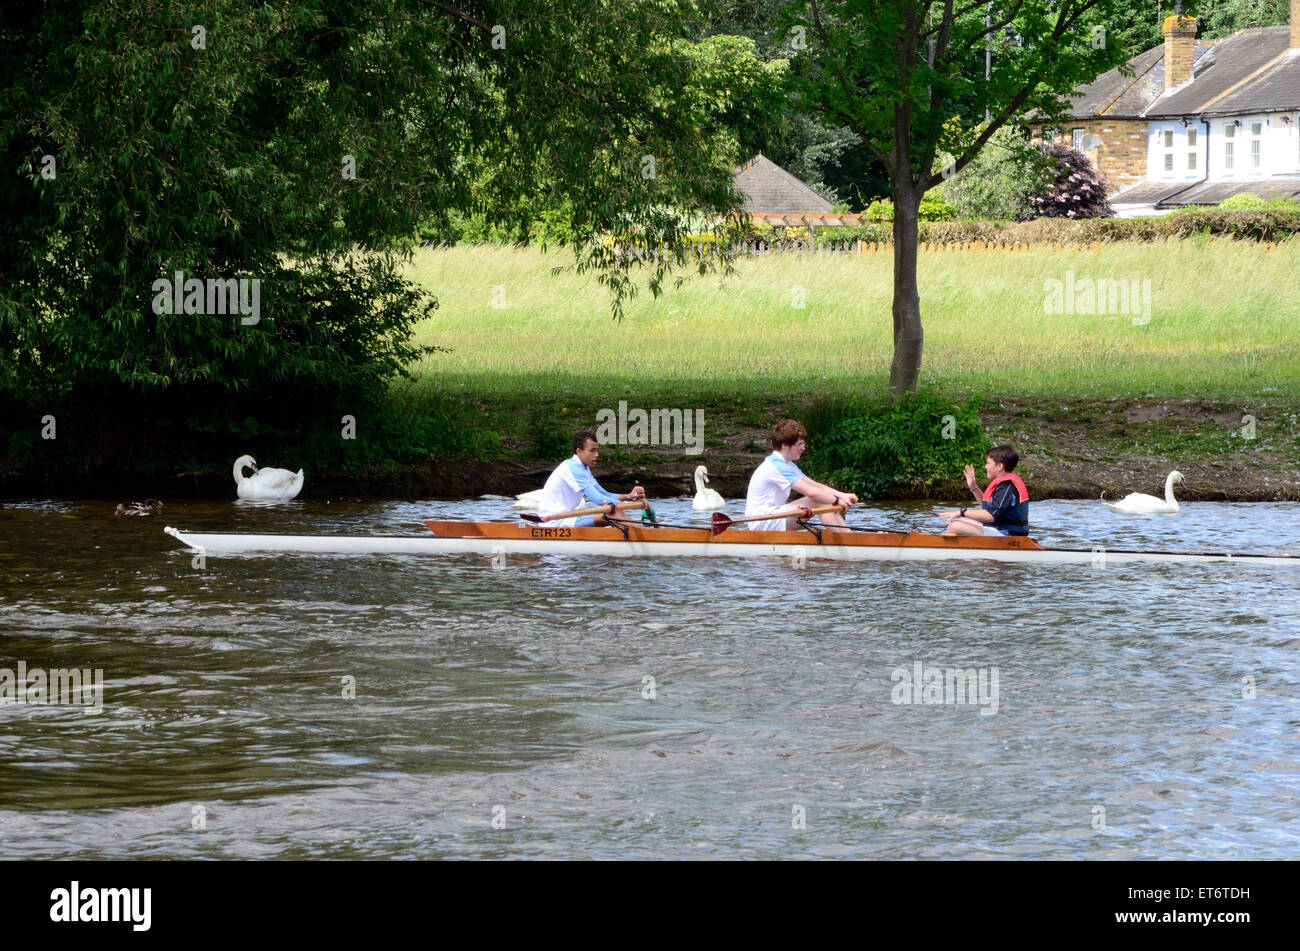 A coxed pair rowing  boat crew practicing on The River Thames in Windsor. - Stock Image